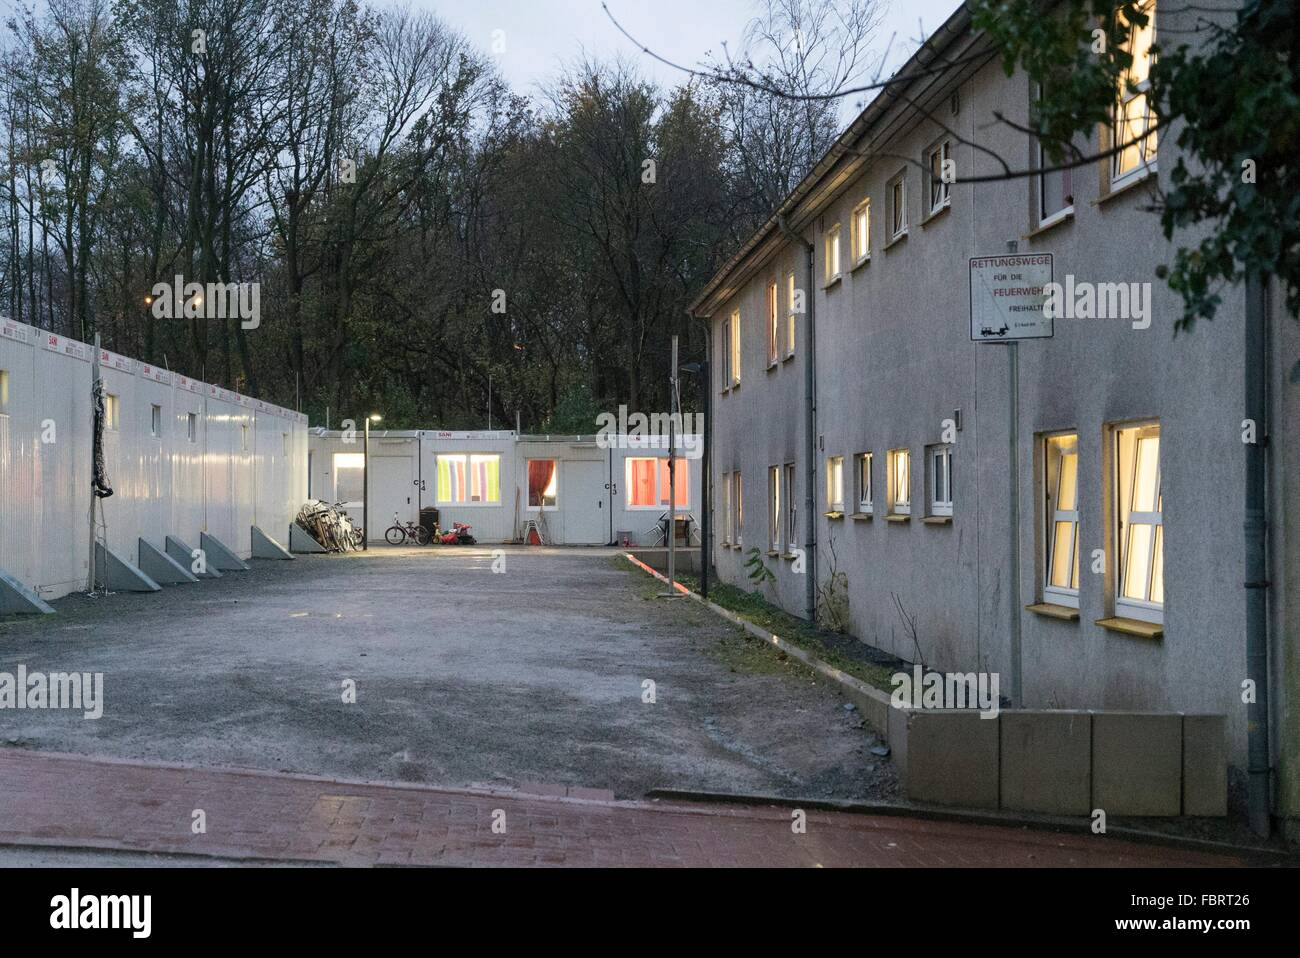 residential containers in a refugee camp in Bochum, 15.11.2015 - Stock Image